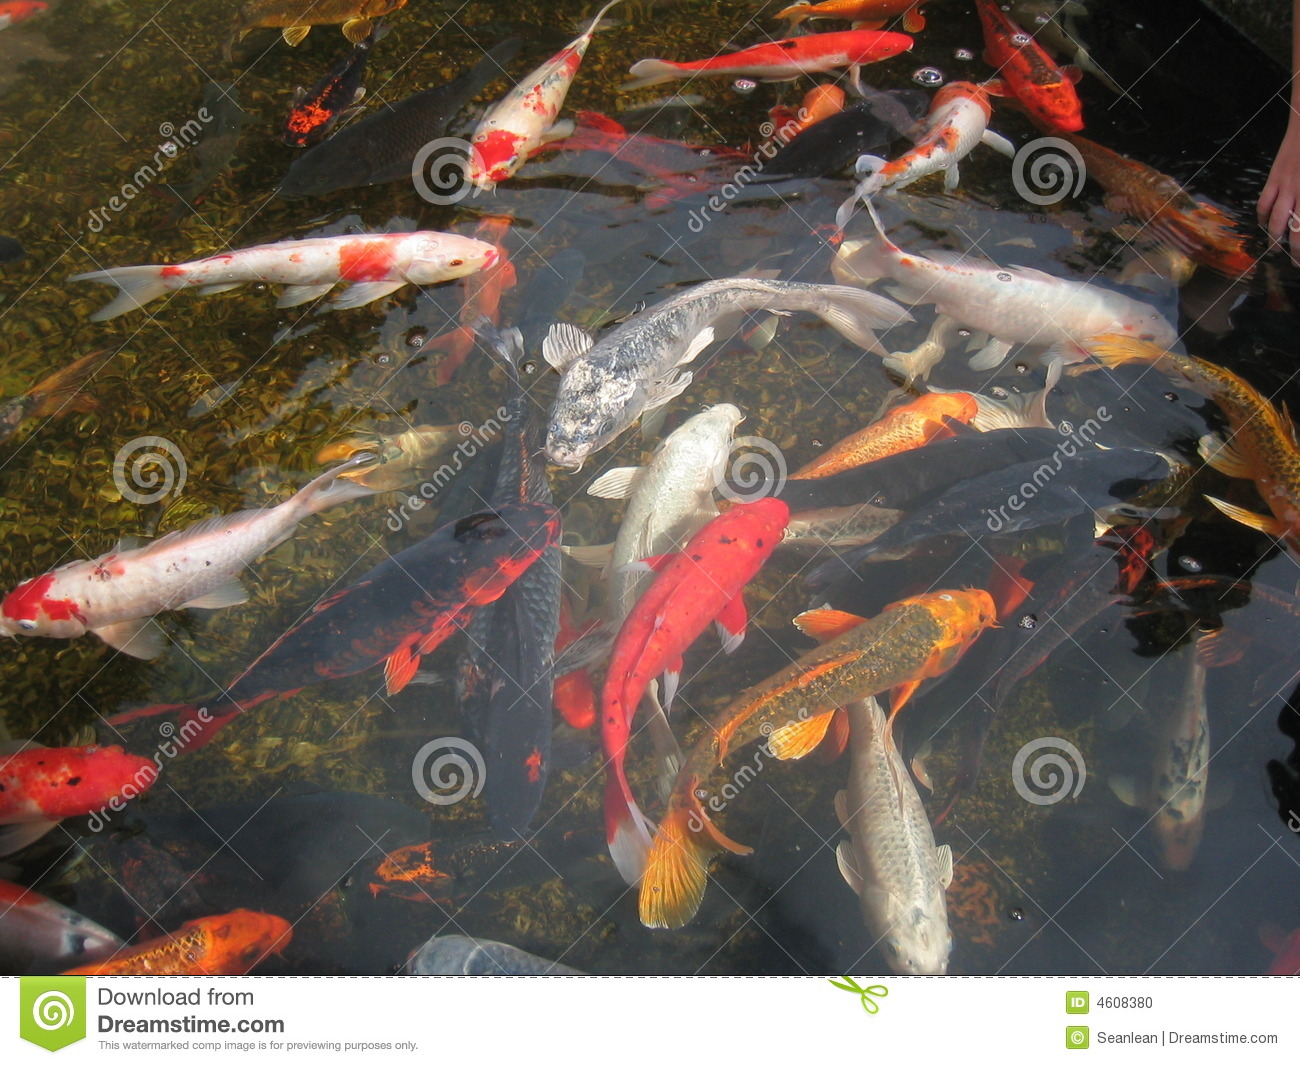 Koi fish in pond stock photo image 4608380 for Freshwater koi fish